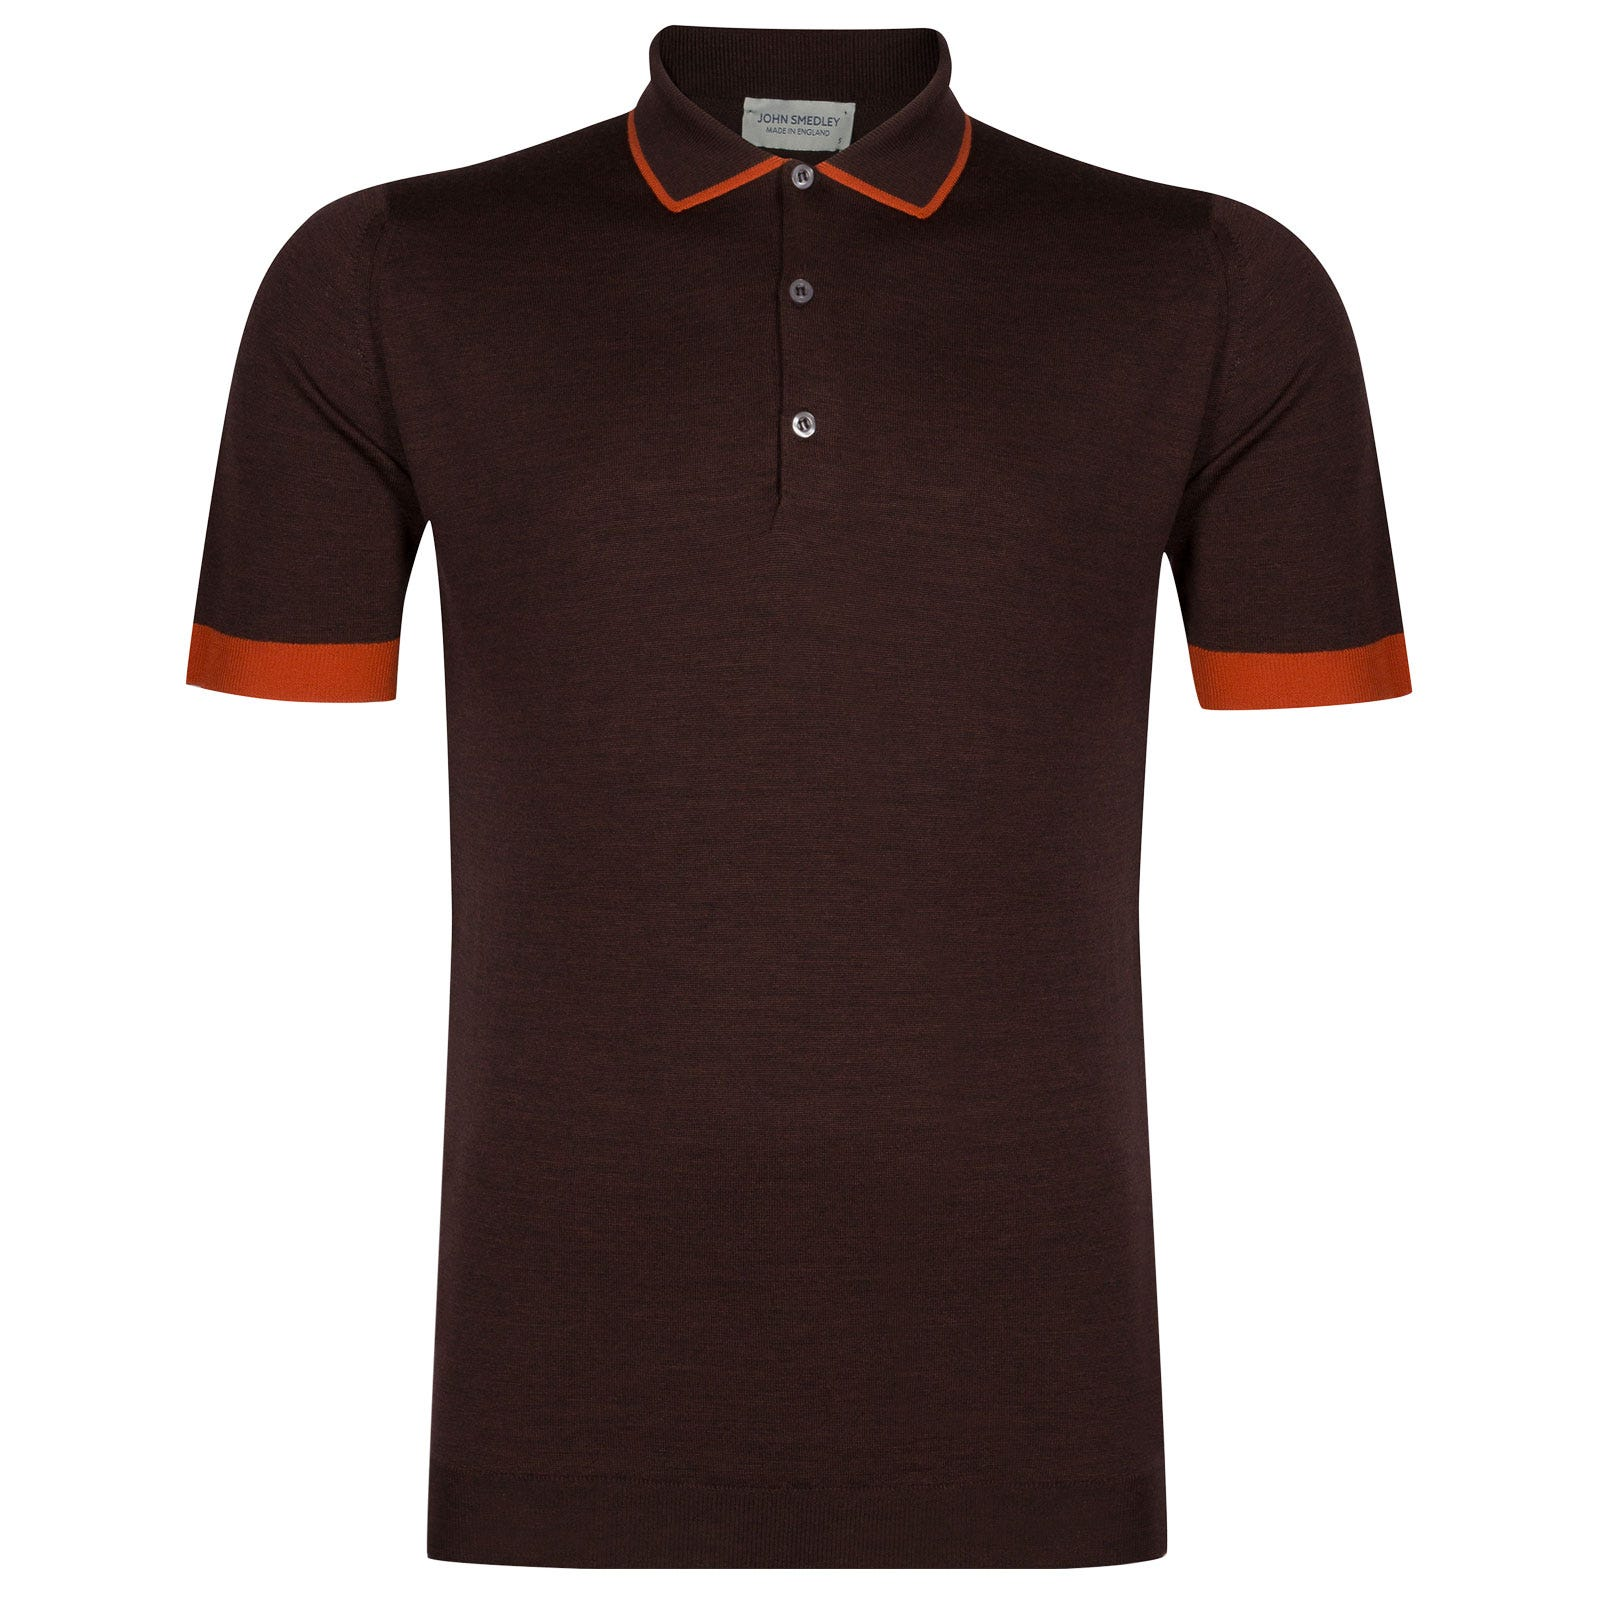 John Smedley nailsea Merino Wool Shirt in Chestnut/Flare Orange-XXL